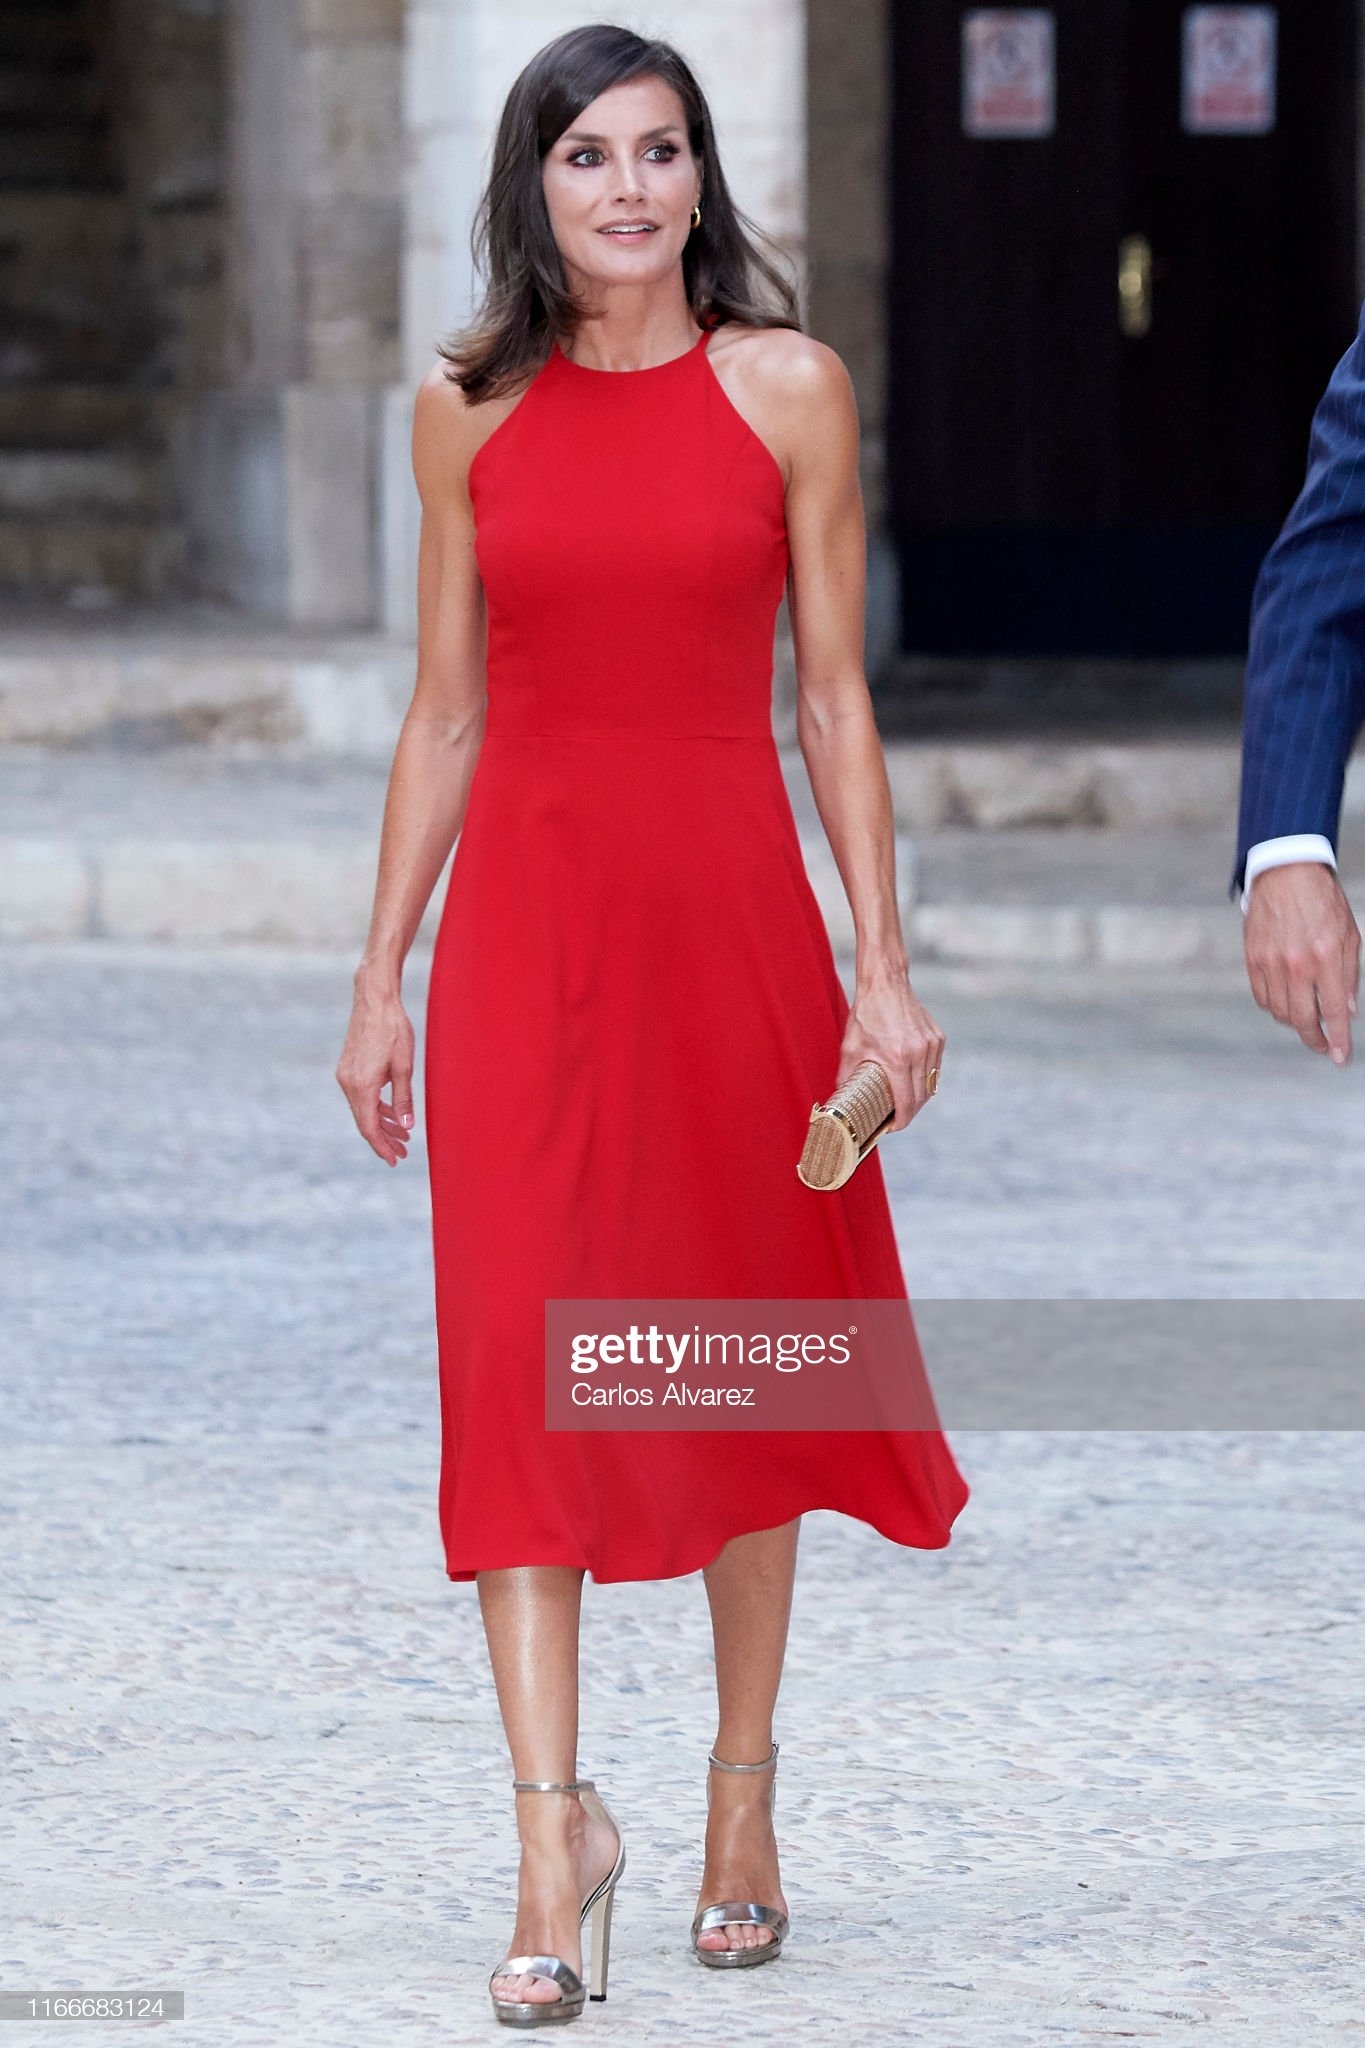 https://media.gettyimages.com/photos/queen-letizia-of-spain-hosts-a-dinner-for-authorities-at-the-palace-picture-id1166683124?s=2048x2048